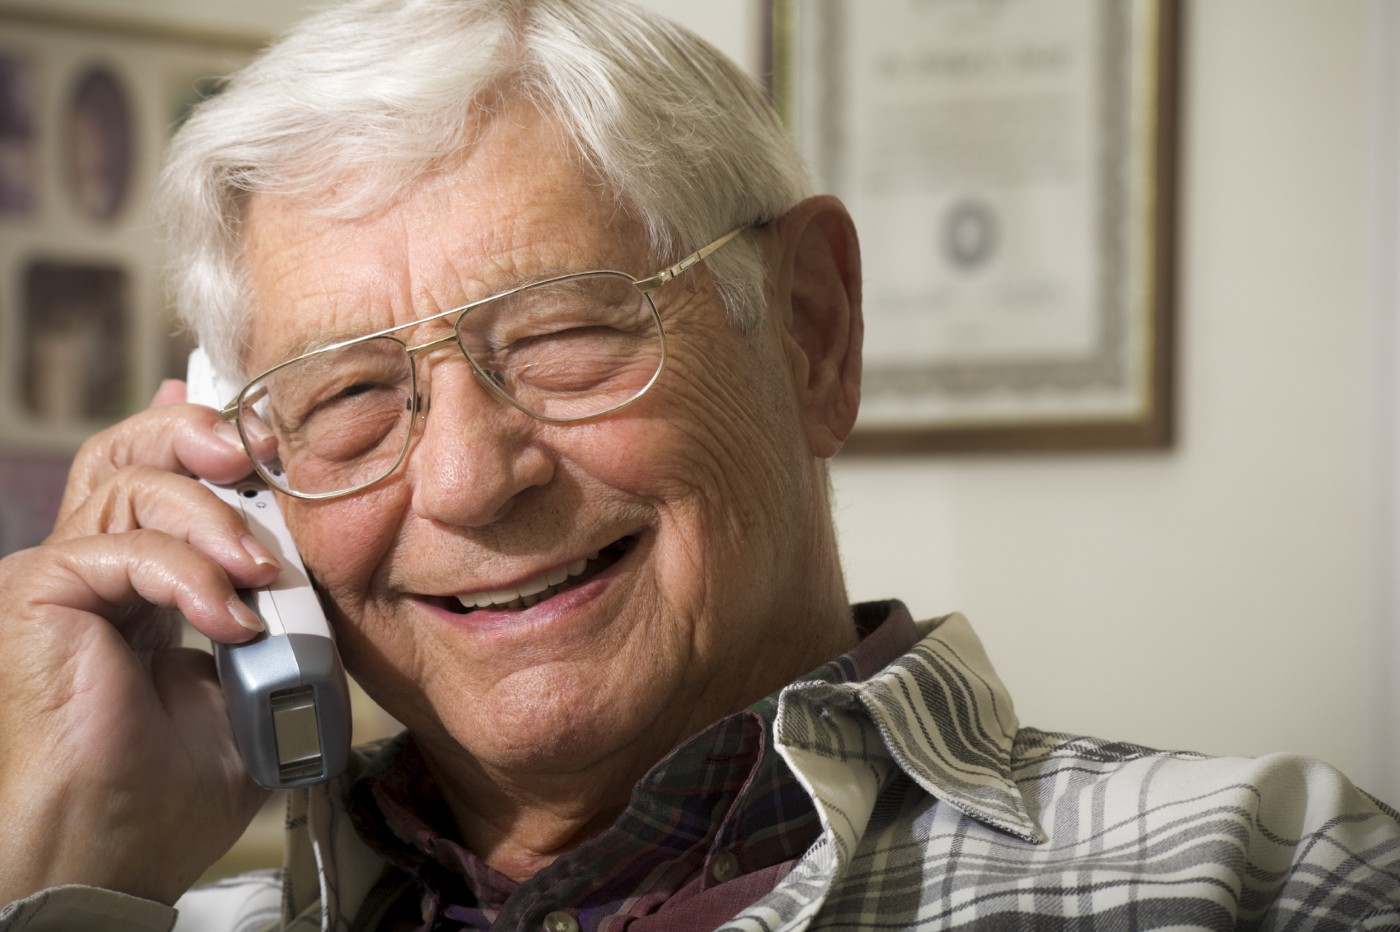 Smiling gentleman on the telephone, photo from Deafblind UK